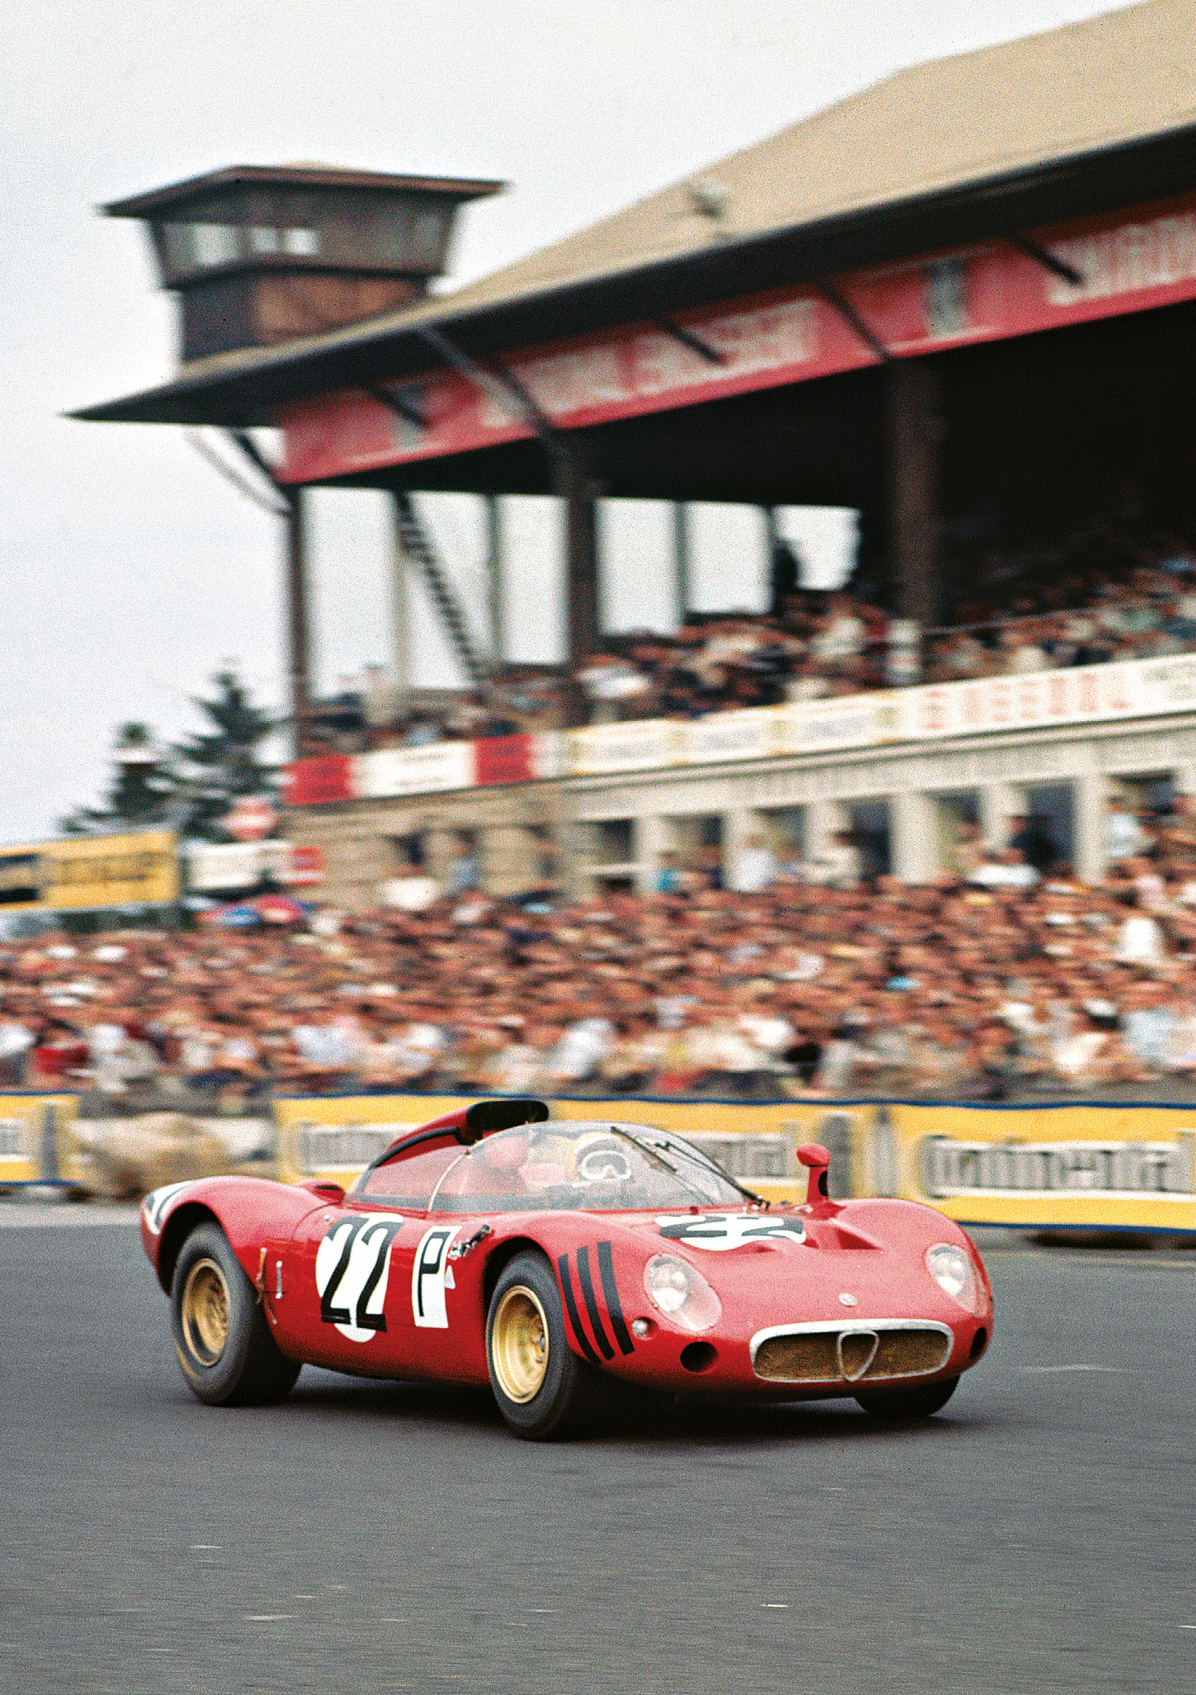 Businello/Zeccoli scored the T33's first WC points, fifth in the Nürburgring 1000Kms in 1967